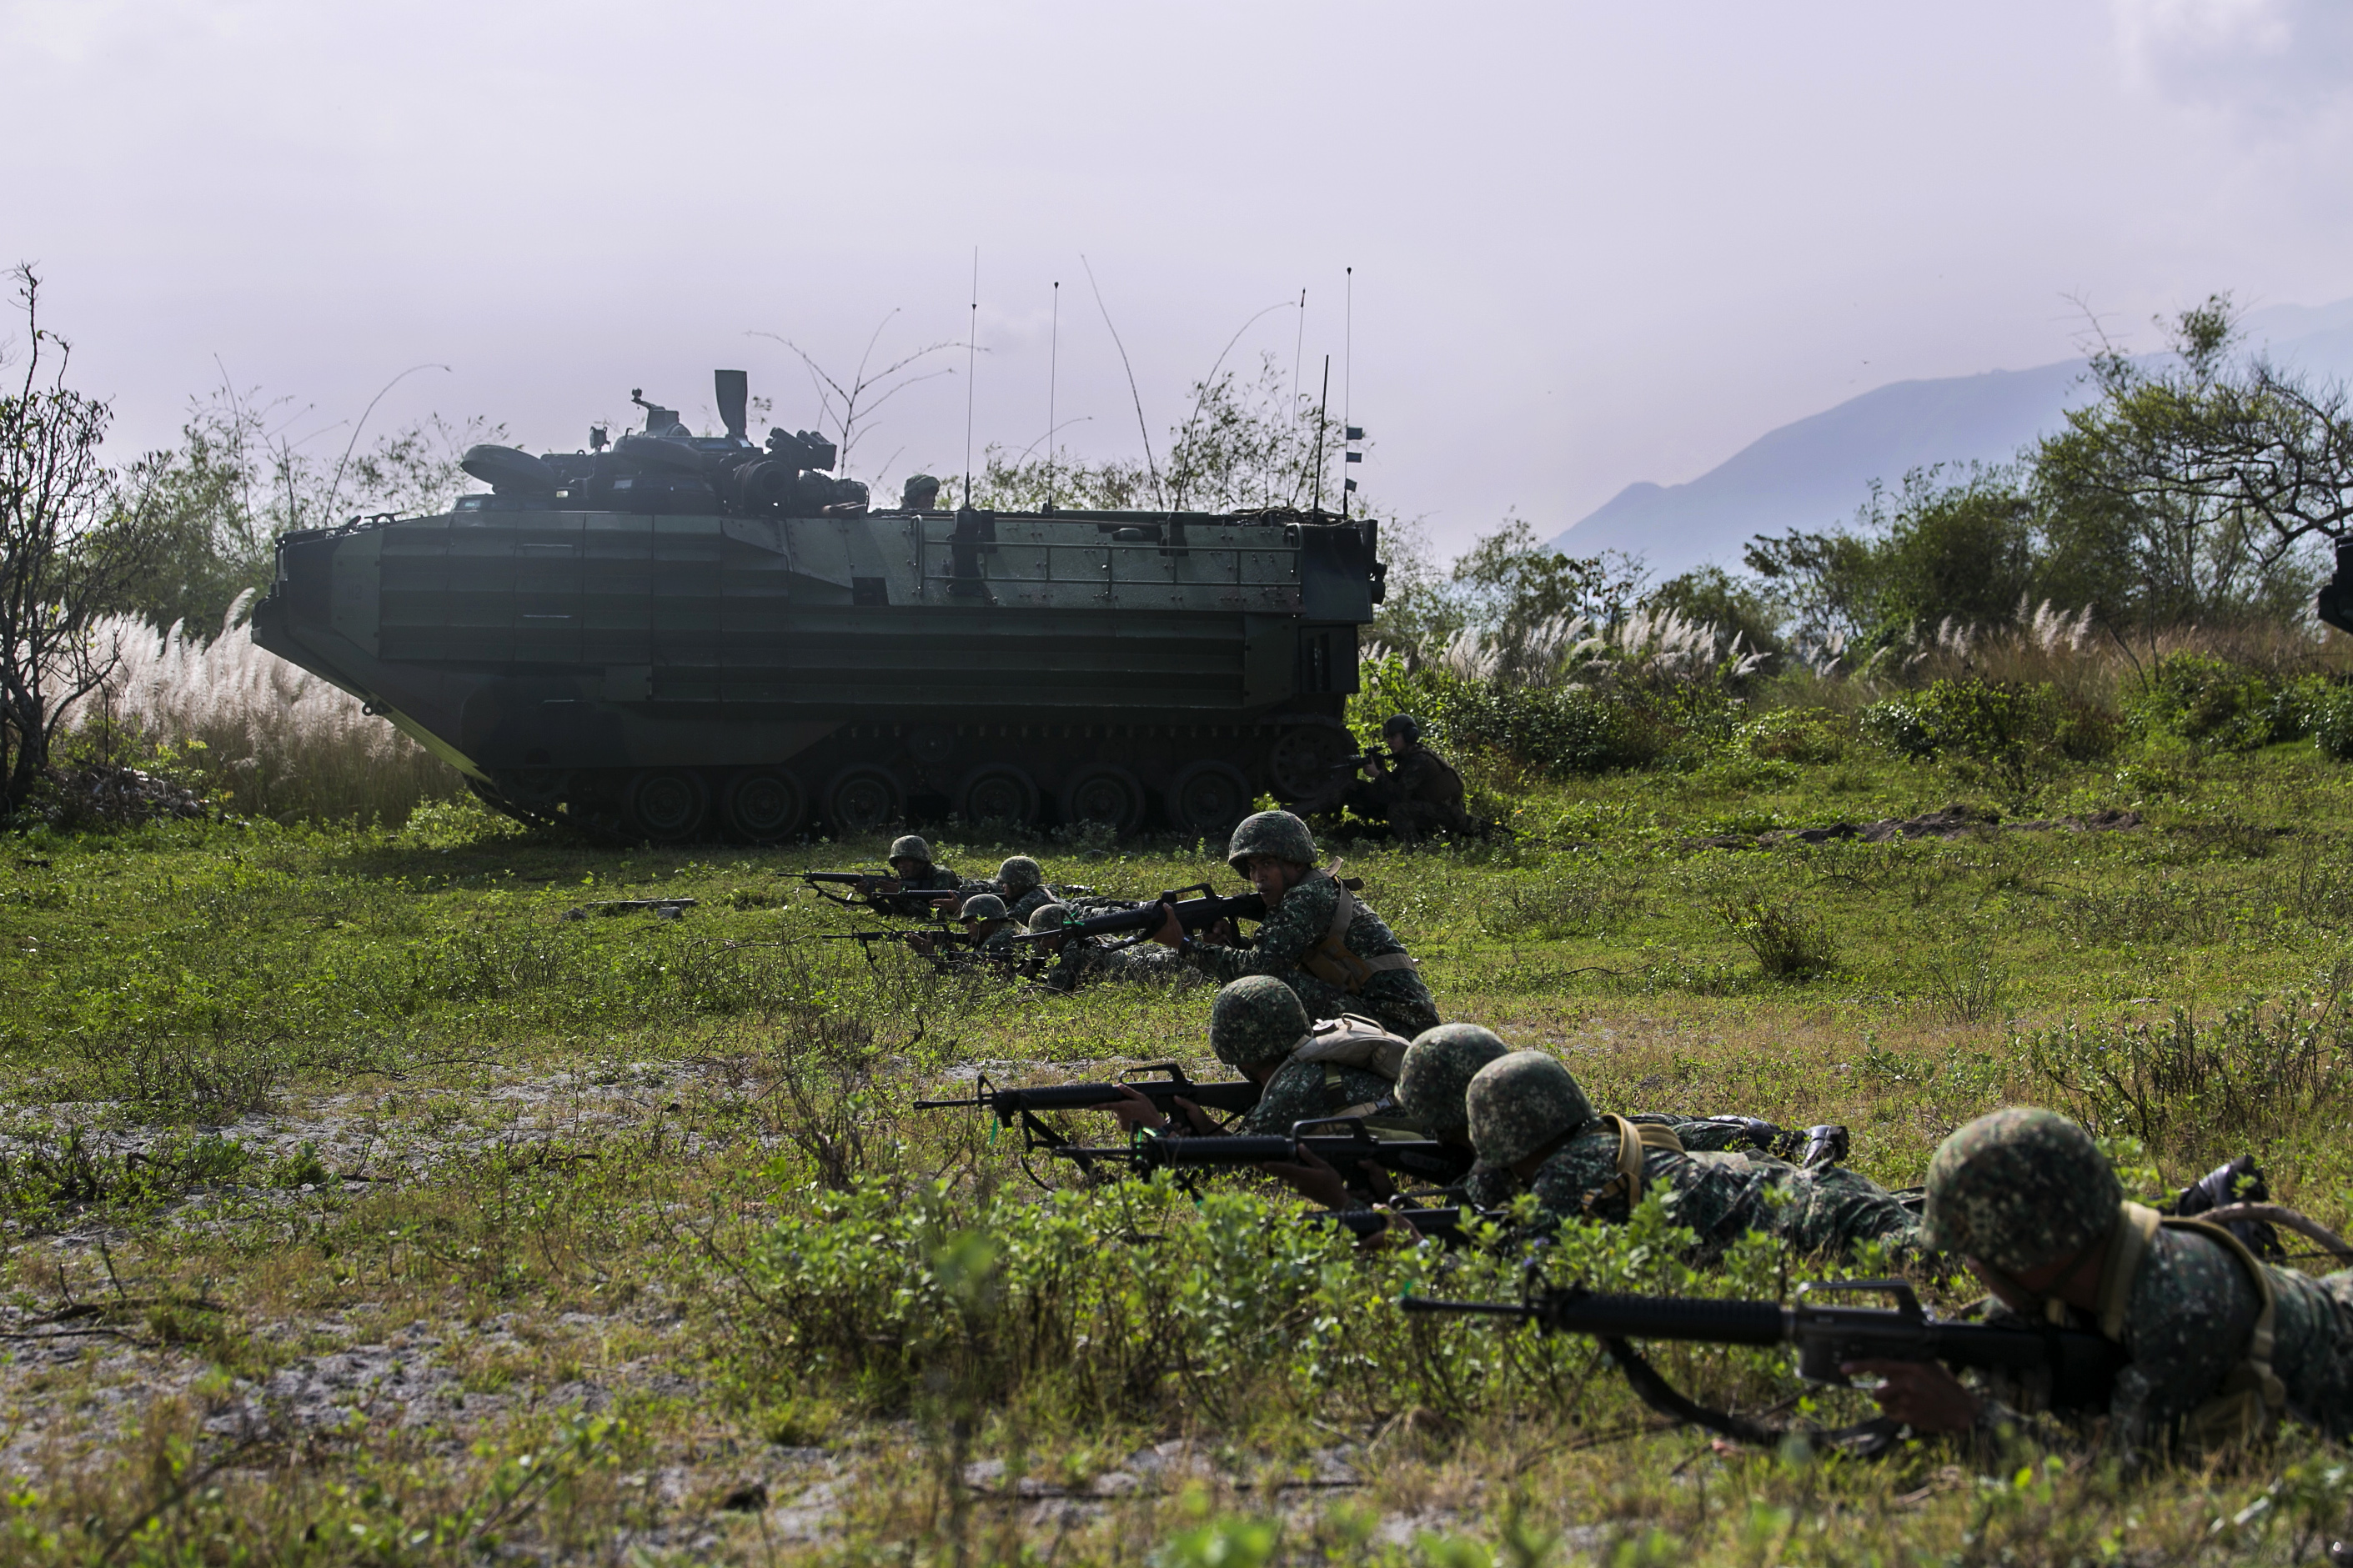 Philippine and U.S. Marines provide supporting fire with U.S. Marine Amphibious Assault Vehicles to simulate suppressing enemy forces during a mechanized assault as part of Amphibious Landing Exercise 15 at Naval Education Training Command, Zambales, Luzon, Philippines in 2015. US Marine Corps Photo